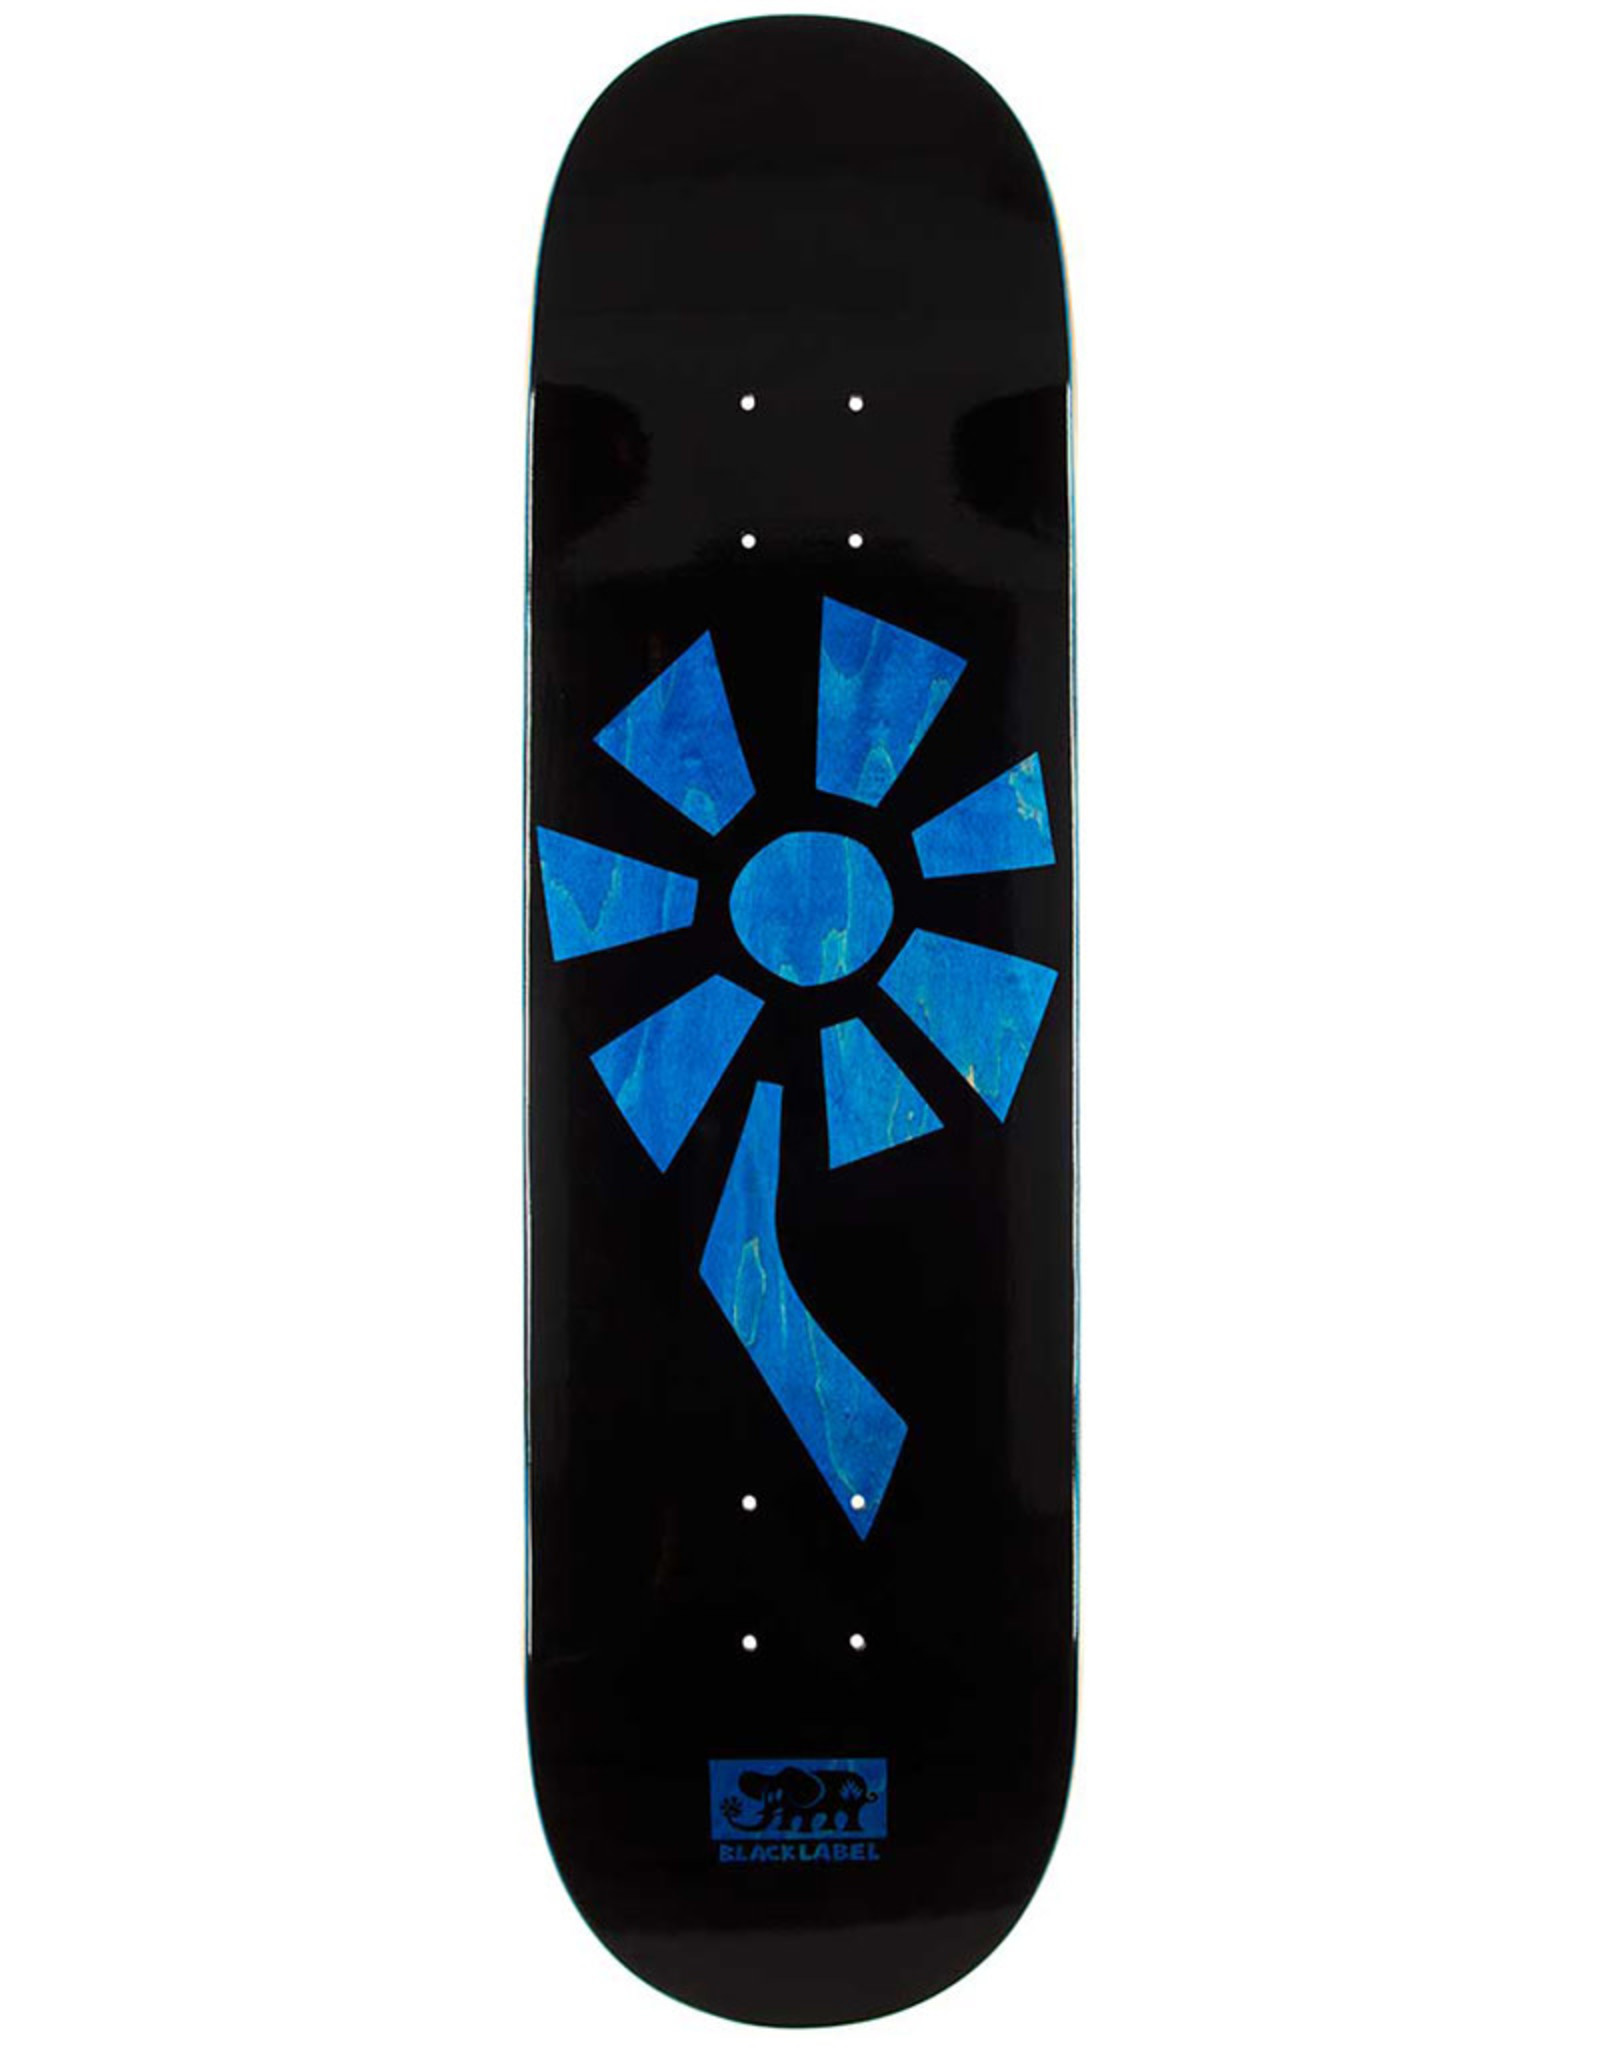 Black Label Black Label Deck Team Flower Power Black/Blue (8.5)